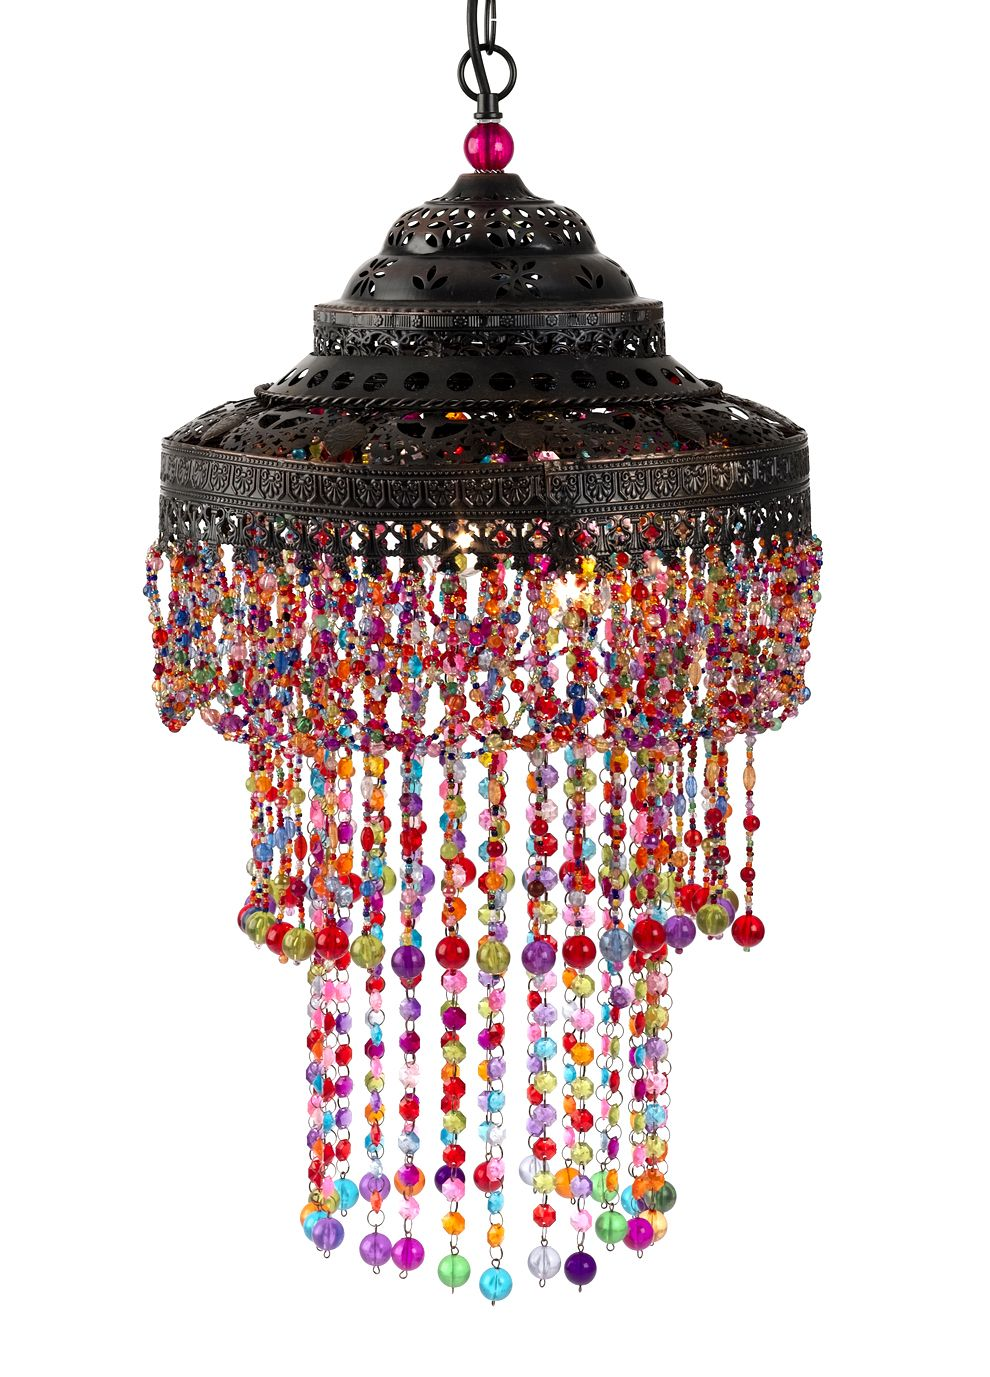 Moroccan Beaded Hanging Lamp Hmn This Gives Me An Idea Or Two